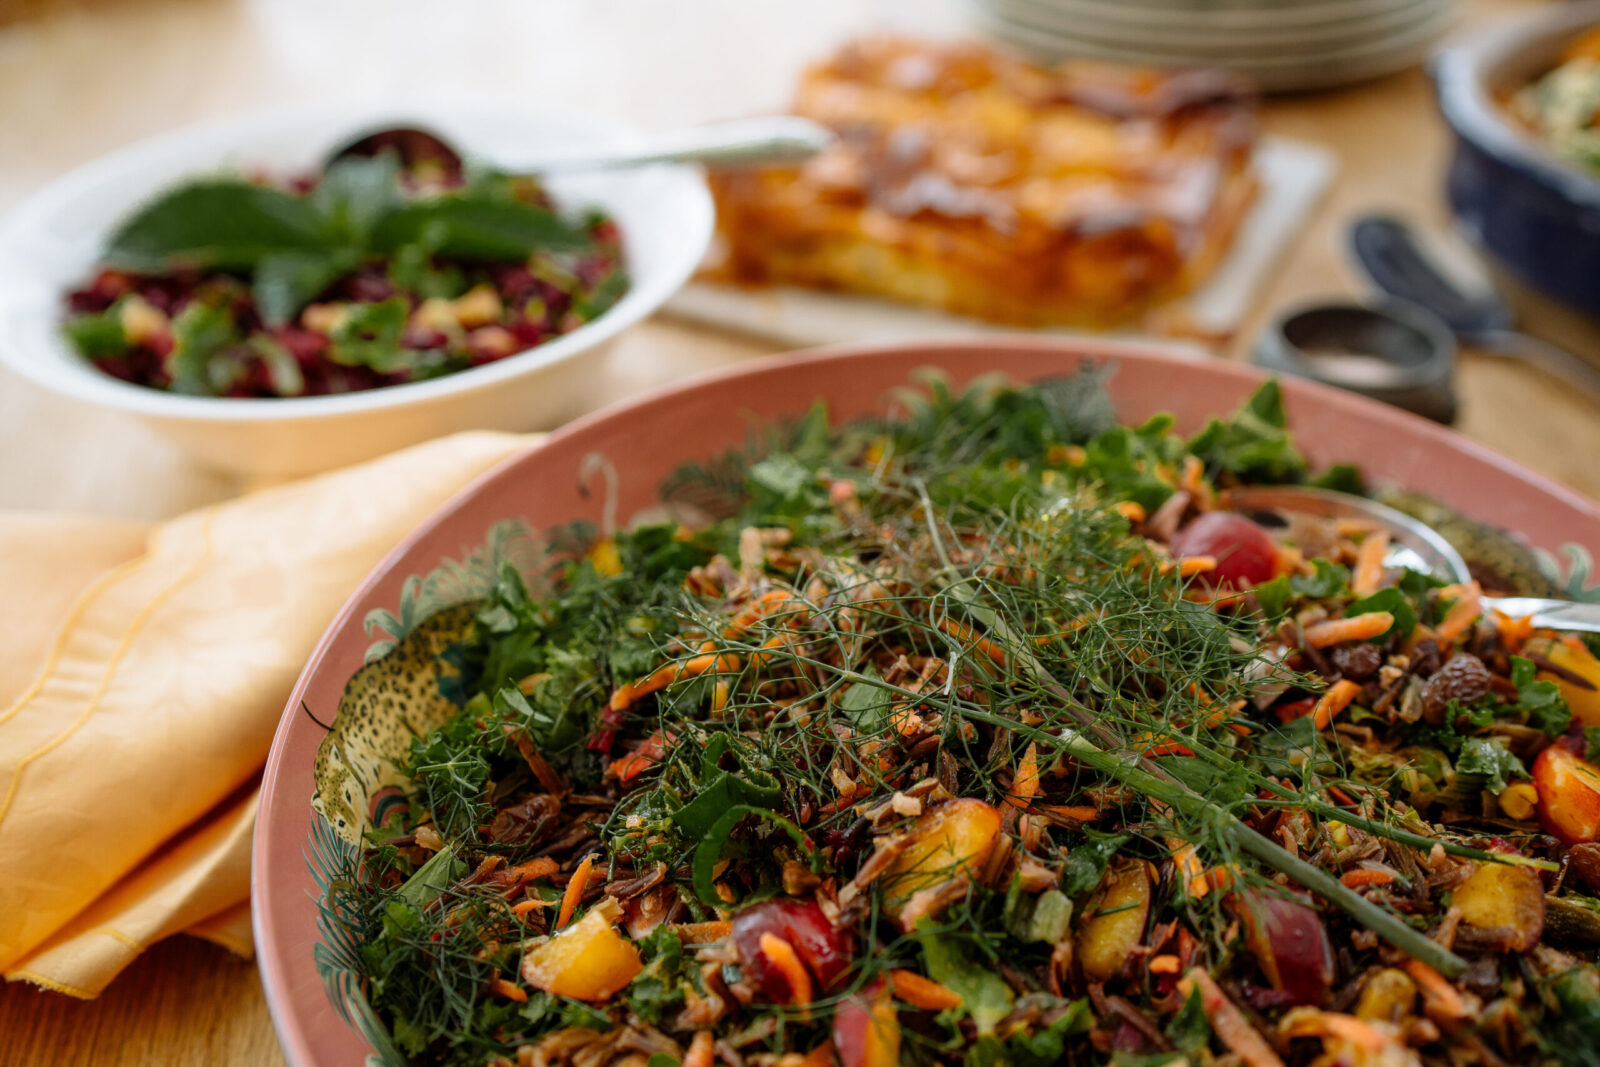 A serving bowl of salad prepared with herbs, fruits and seeds, served on one of our yoga retreats in North Yorkshire.